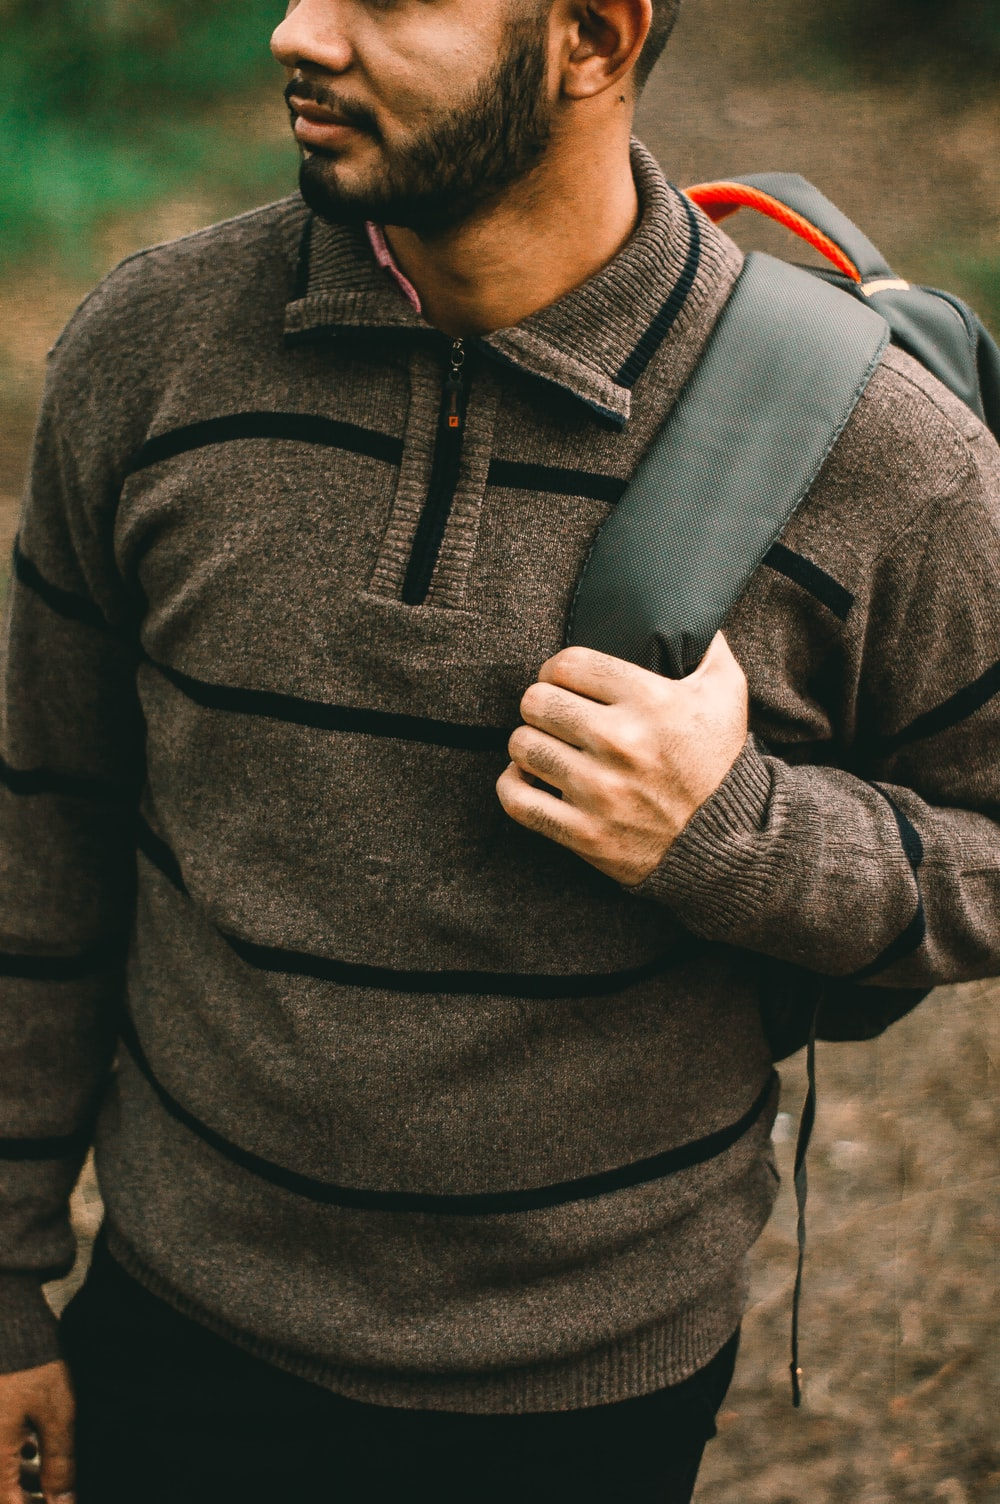 shallow focus photography of man holding of his backpack strap